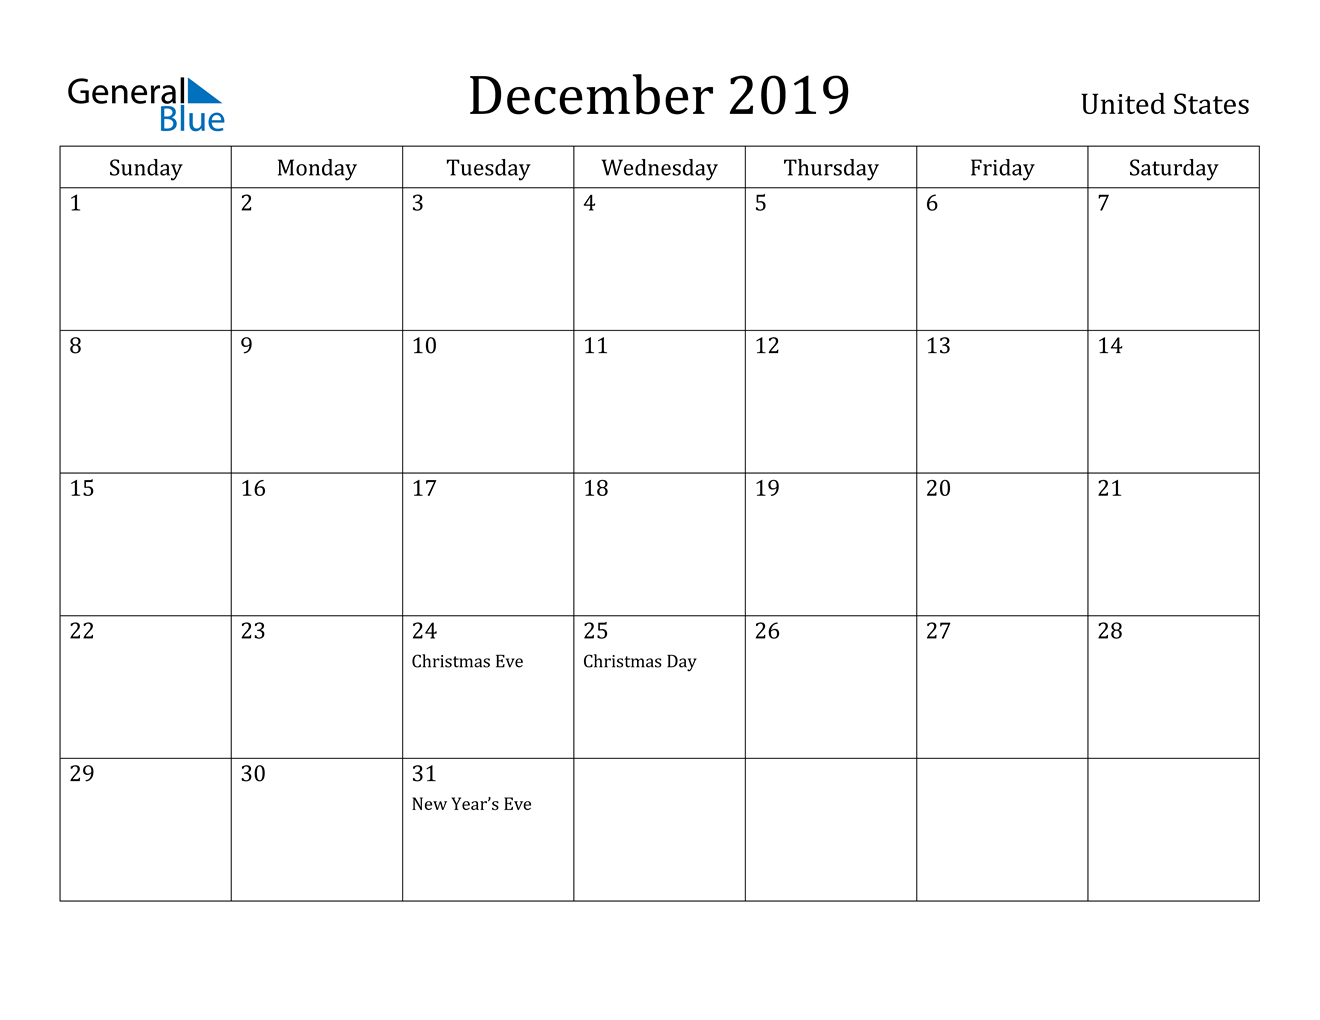 Image of December 2019 United States Calendar with Holidays Calendar